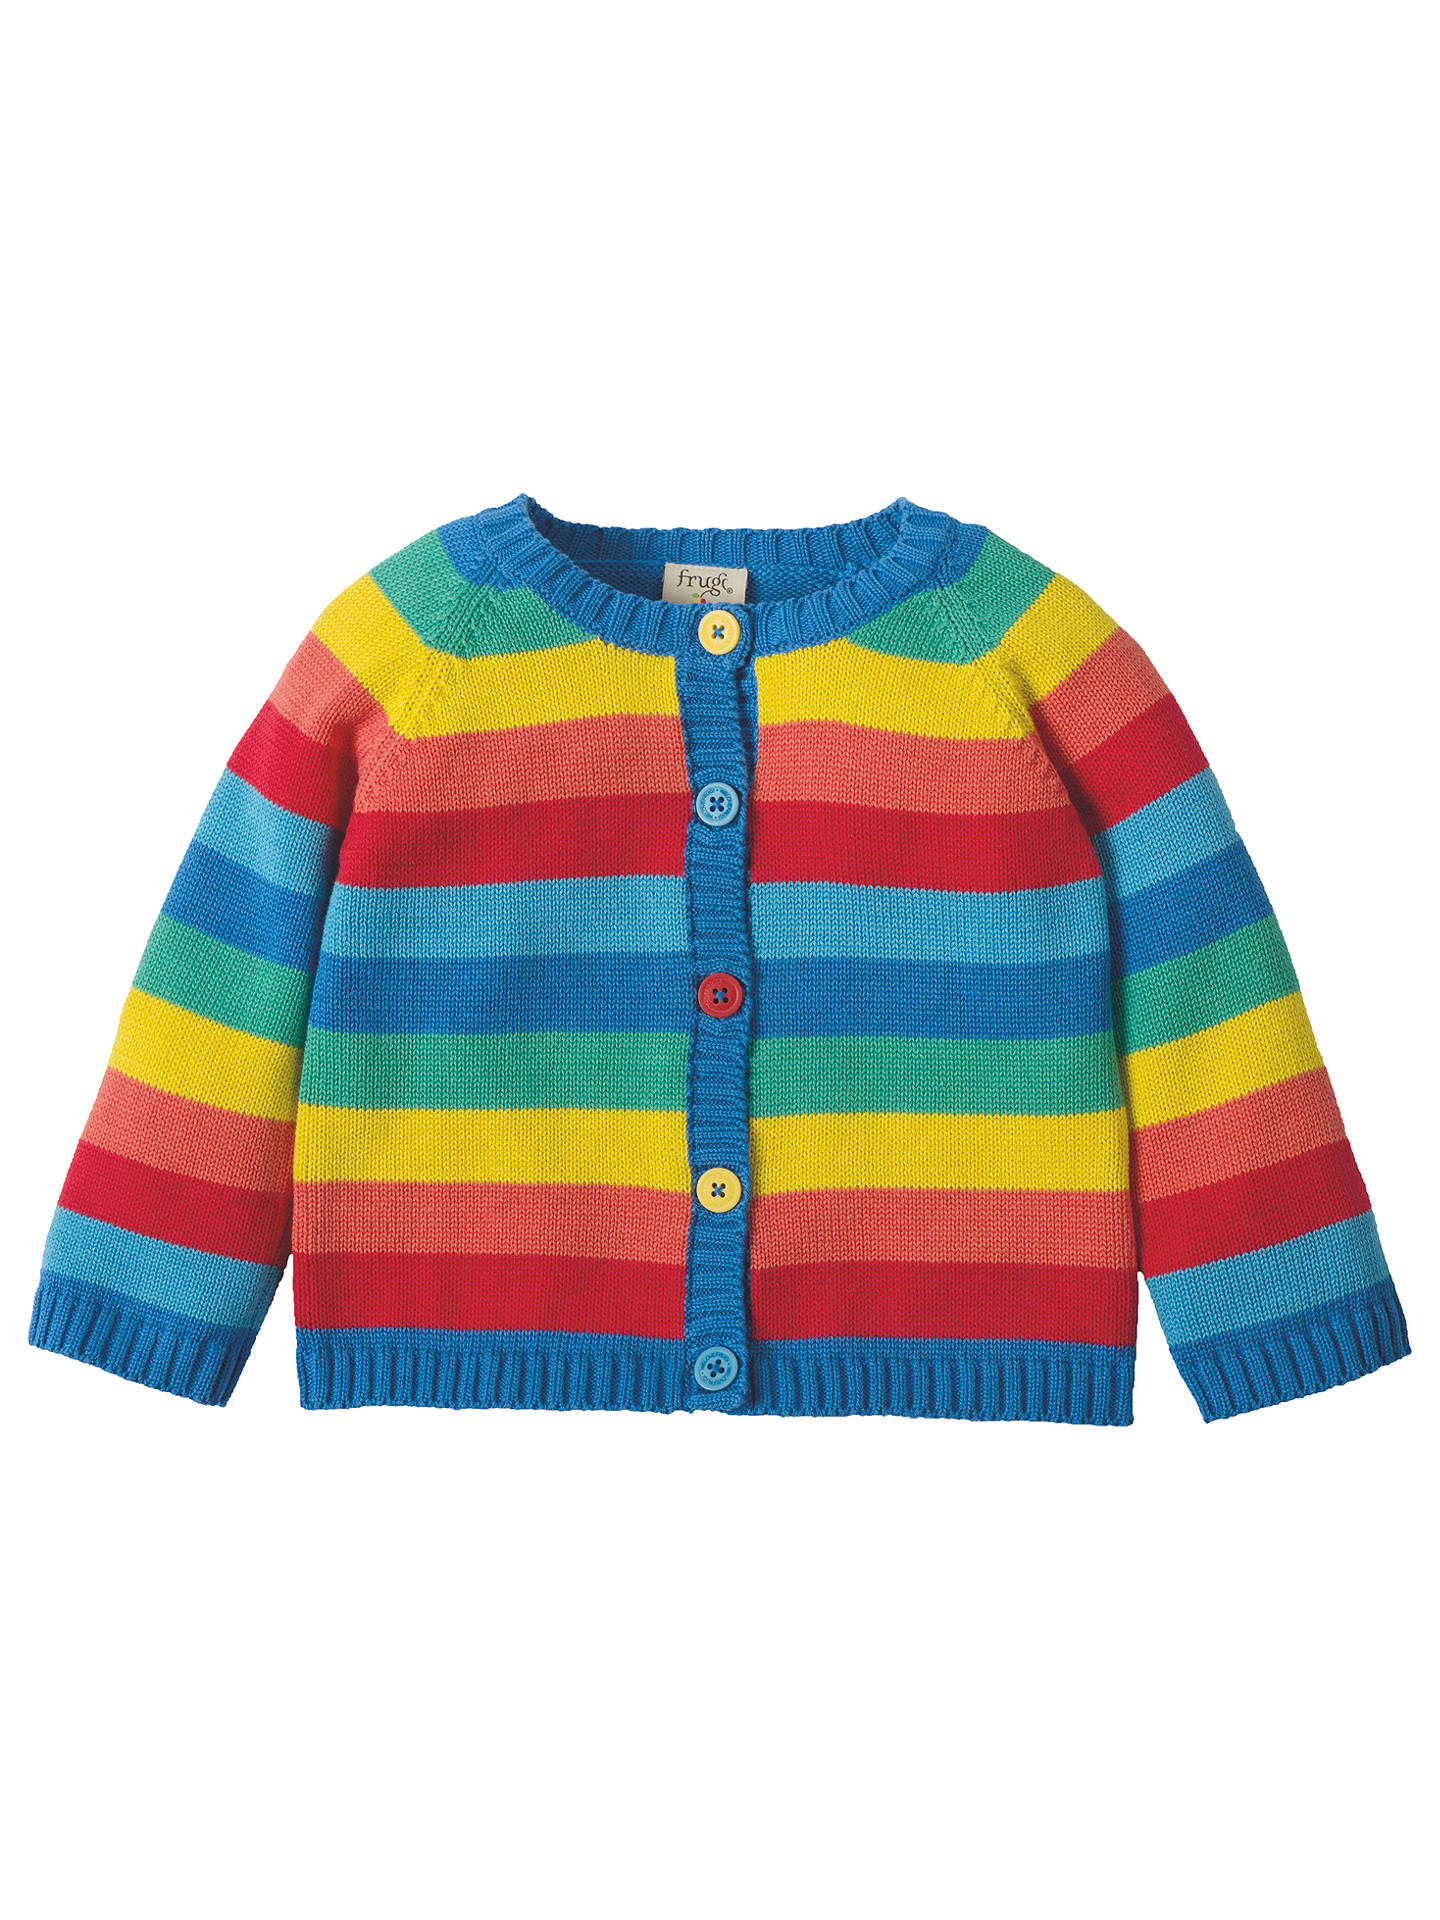 53e11cfae693 Frugi Organic Baby Little Happy Day Striped Cardigan